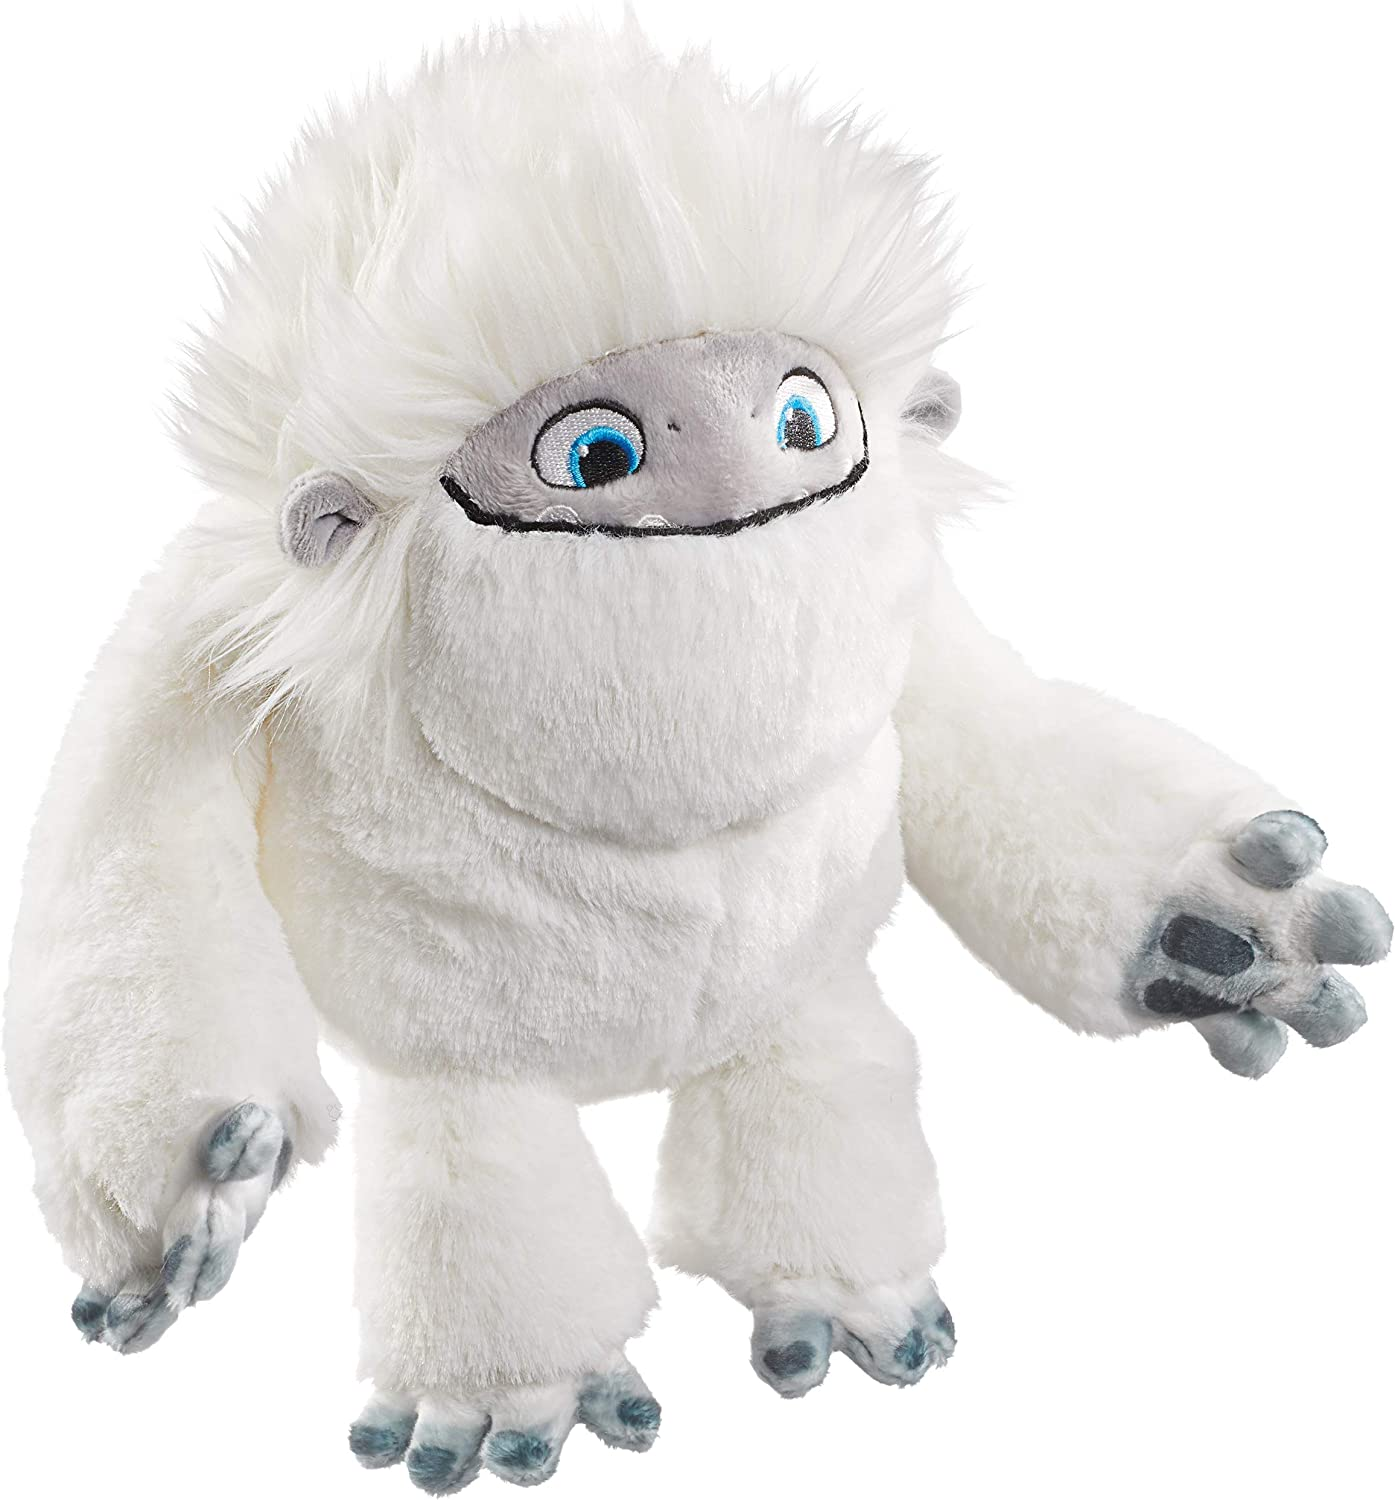 Amazon.es: DreamWorks Abominable Everest - Peluche (25 cm): Juguetes y juegos